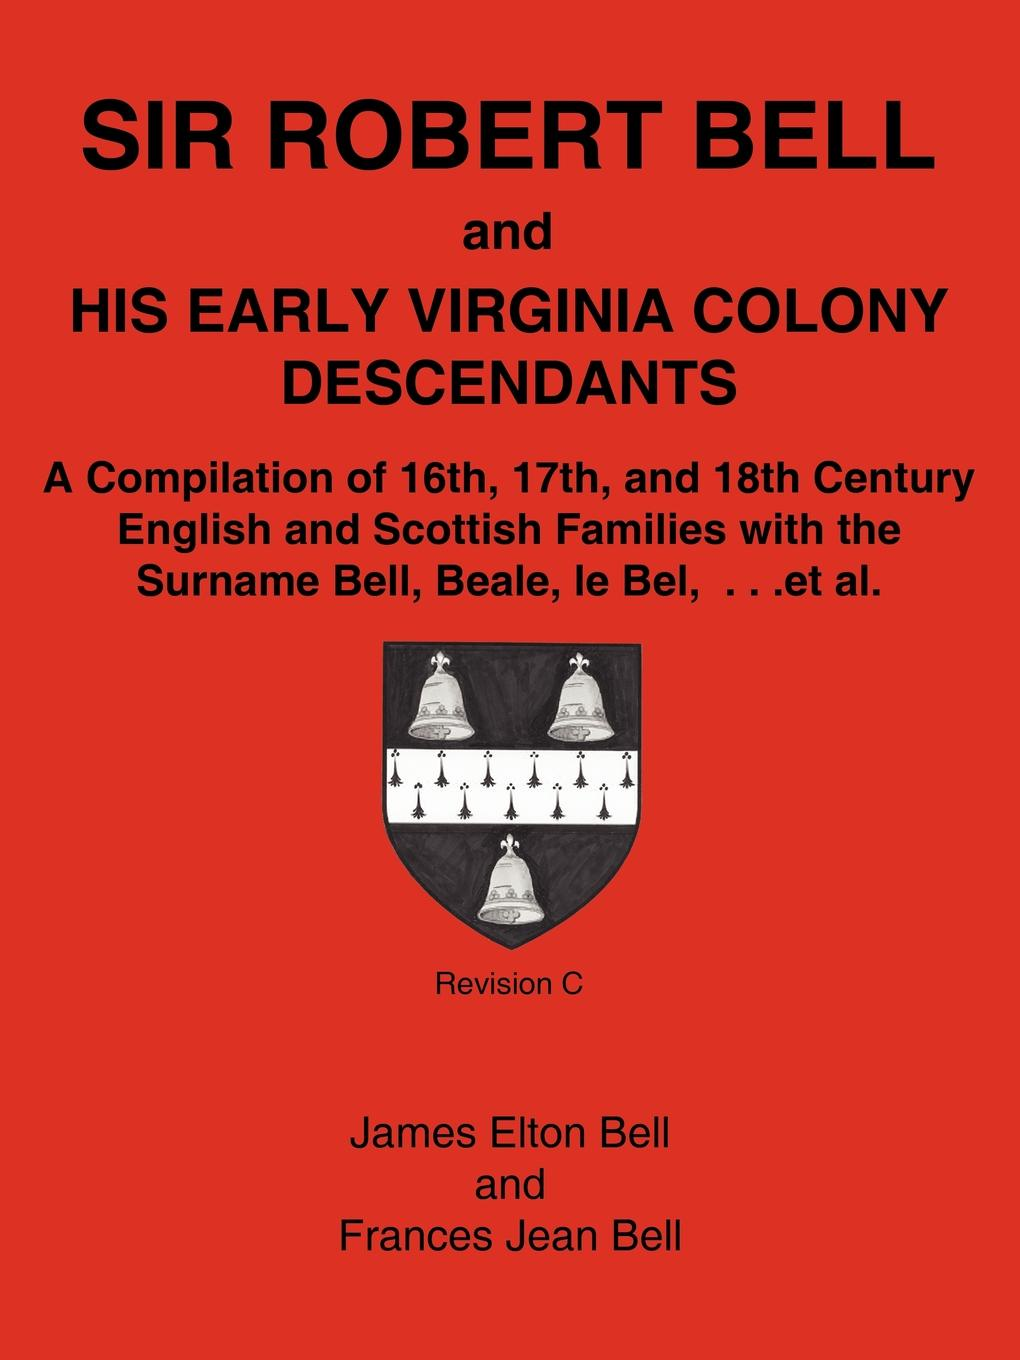 James Elton Bell, Frances Jean Bell Sir Robert Bell and His Early Virginia Colony Descendants. A Compilation of 16th, 17th, and 18th Century English and Scottish Families with the Surnam mymei outdoor 90db ring alarm loud horn aluminum bicycle bike safety handlebar bell